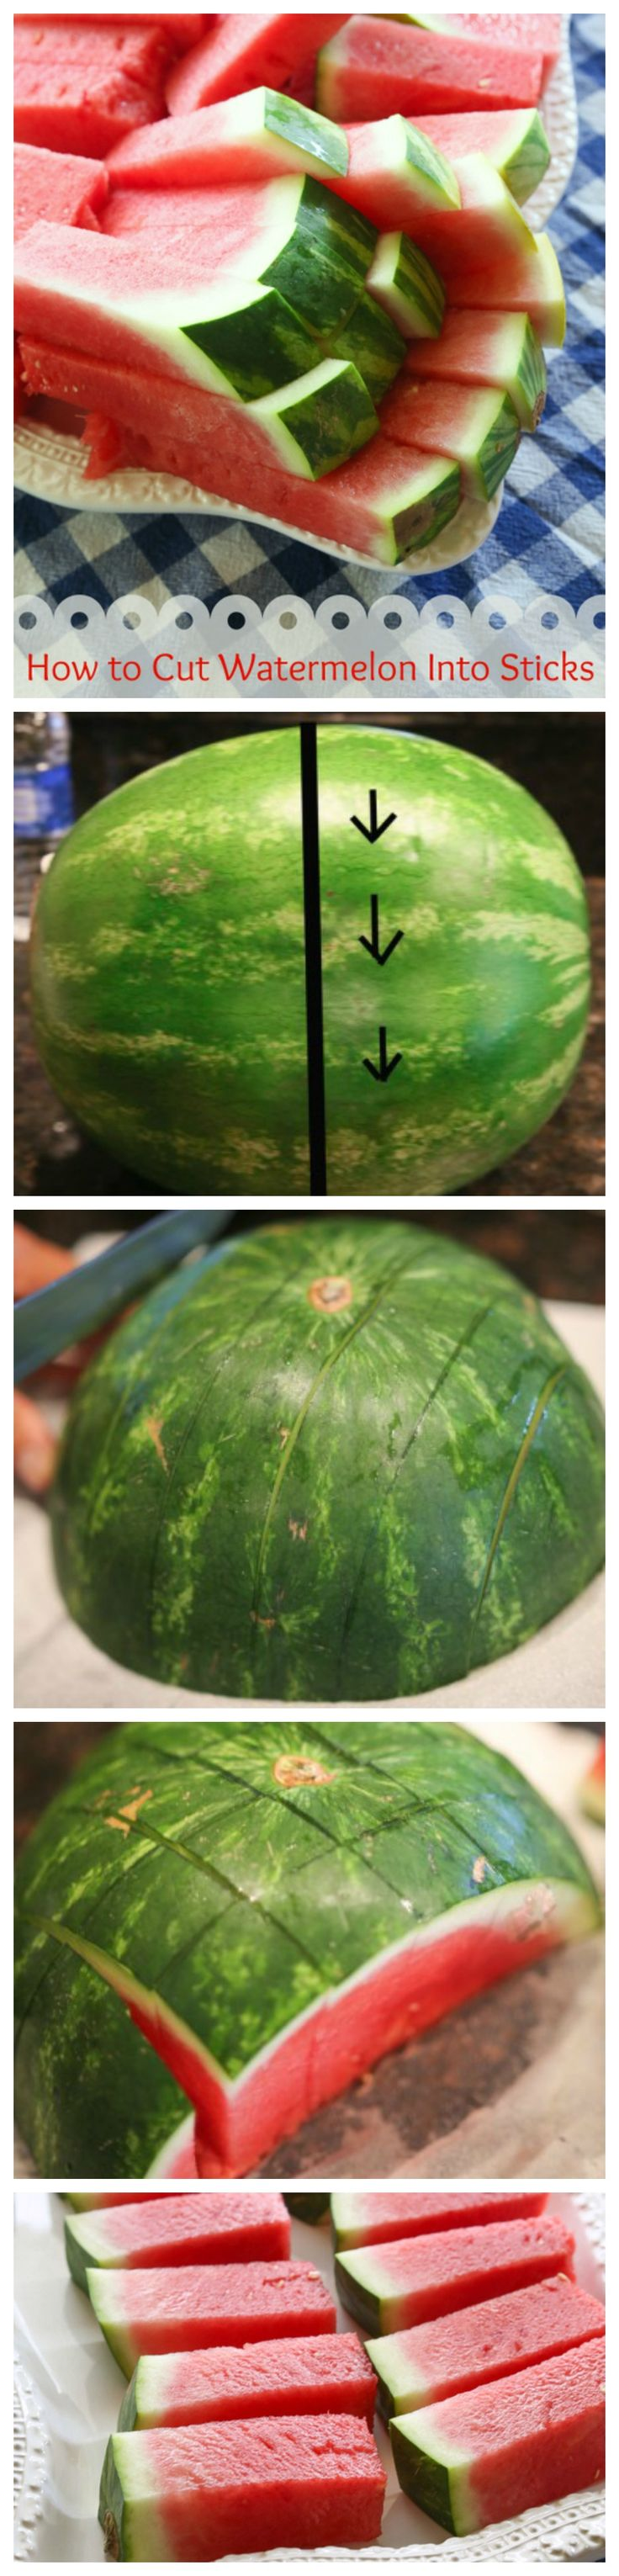 How to cut a watermelon into sticks cutting it this way makes it